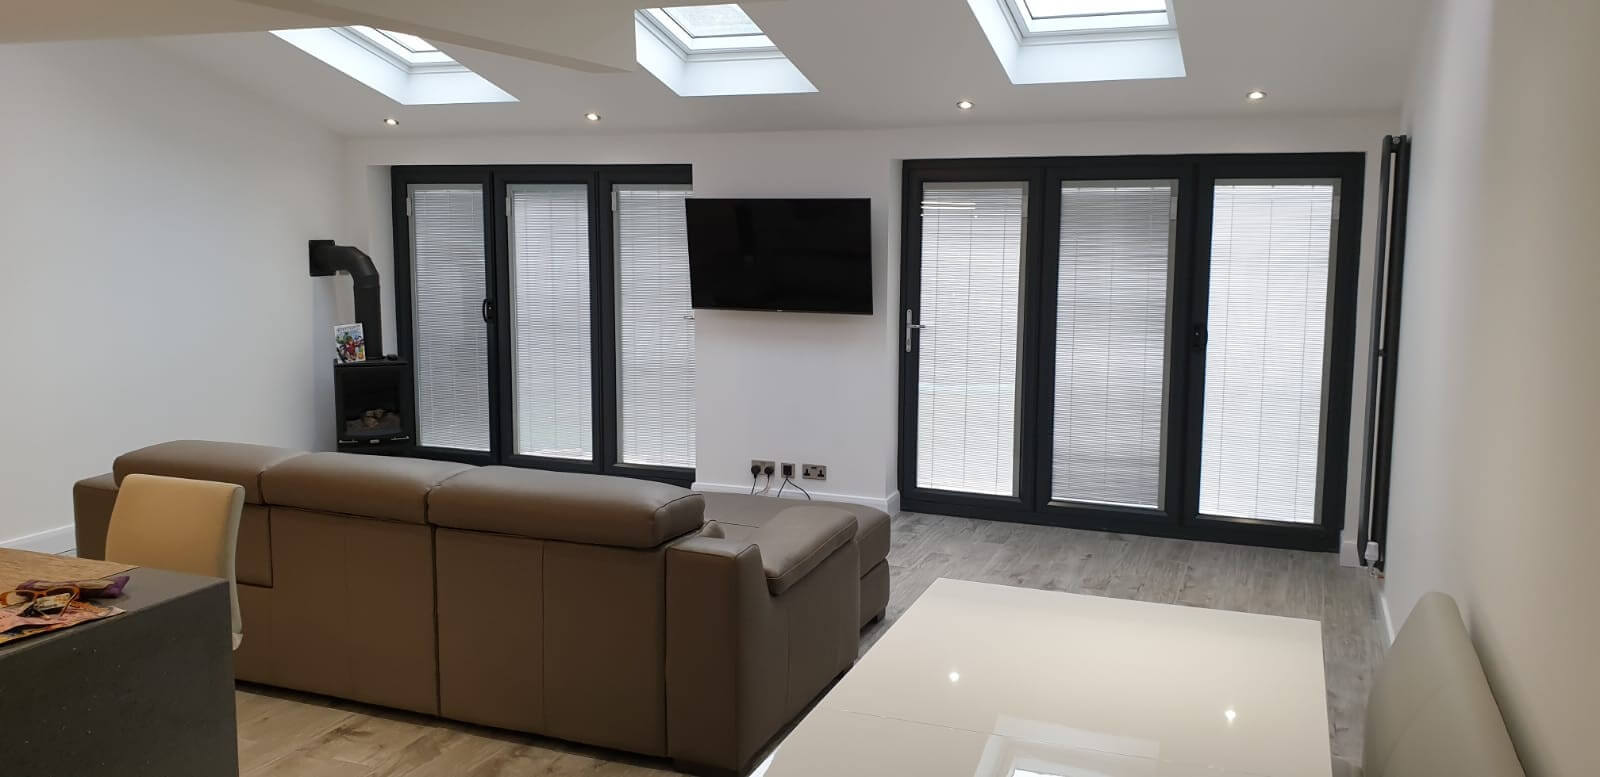 This image shows the living area of a kitchen extension with two 3 pane Bi-Folds in St Helens, Merseyside.